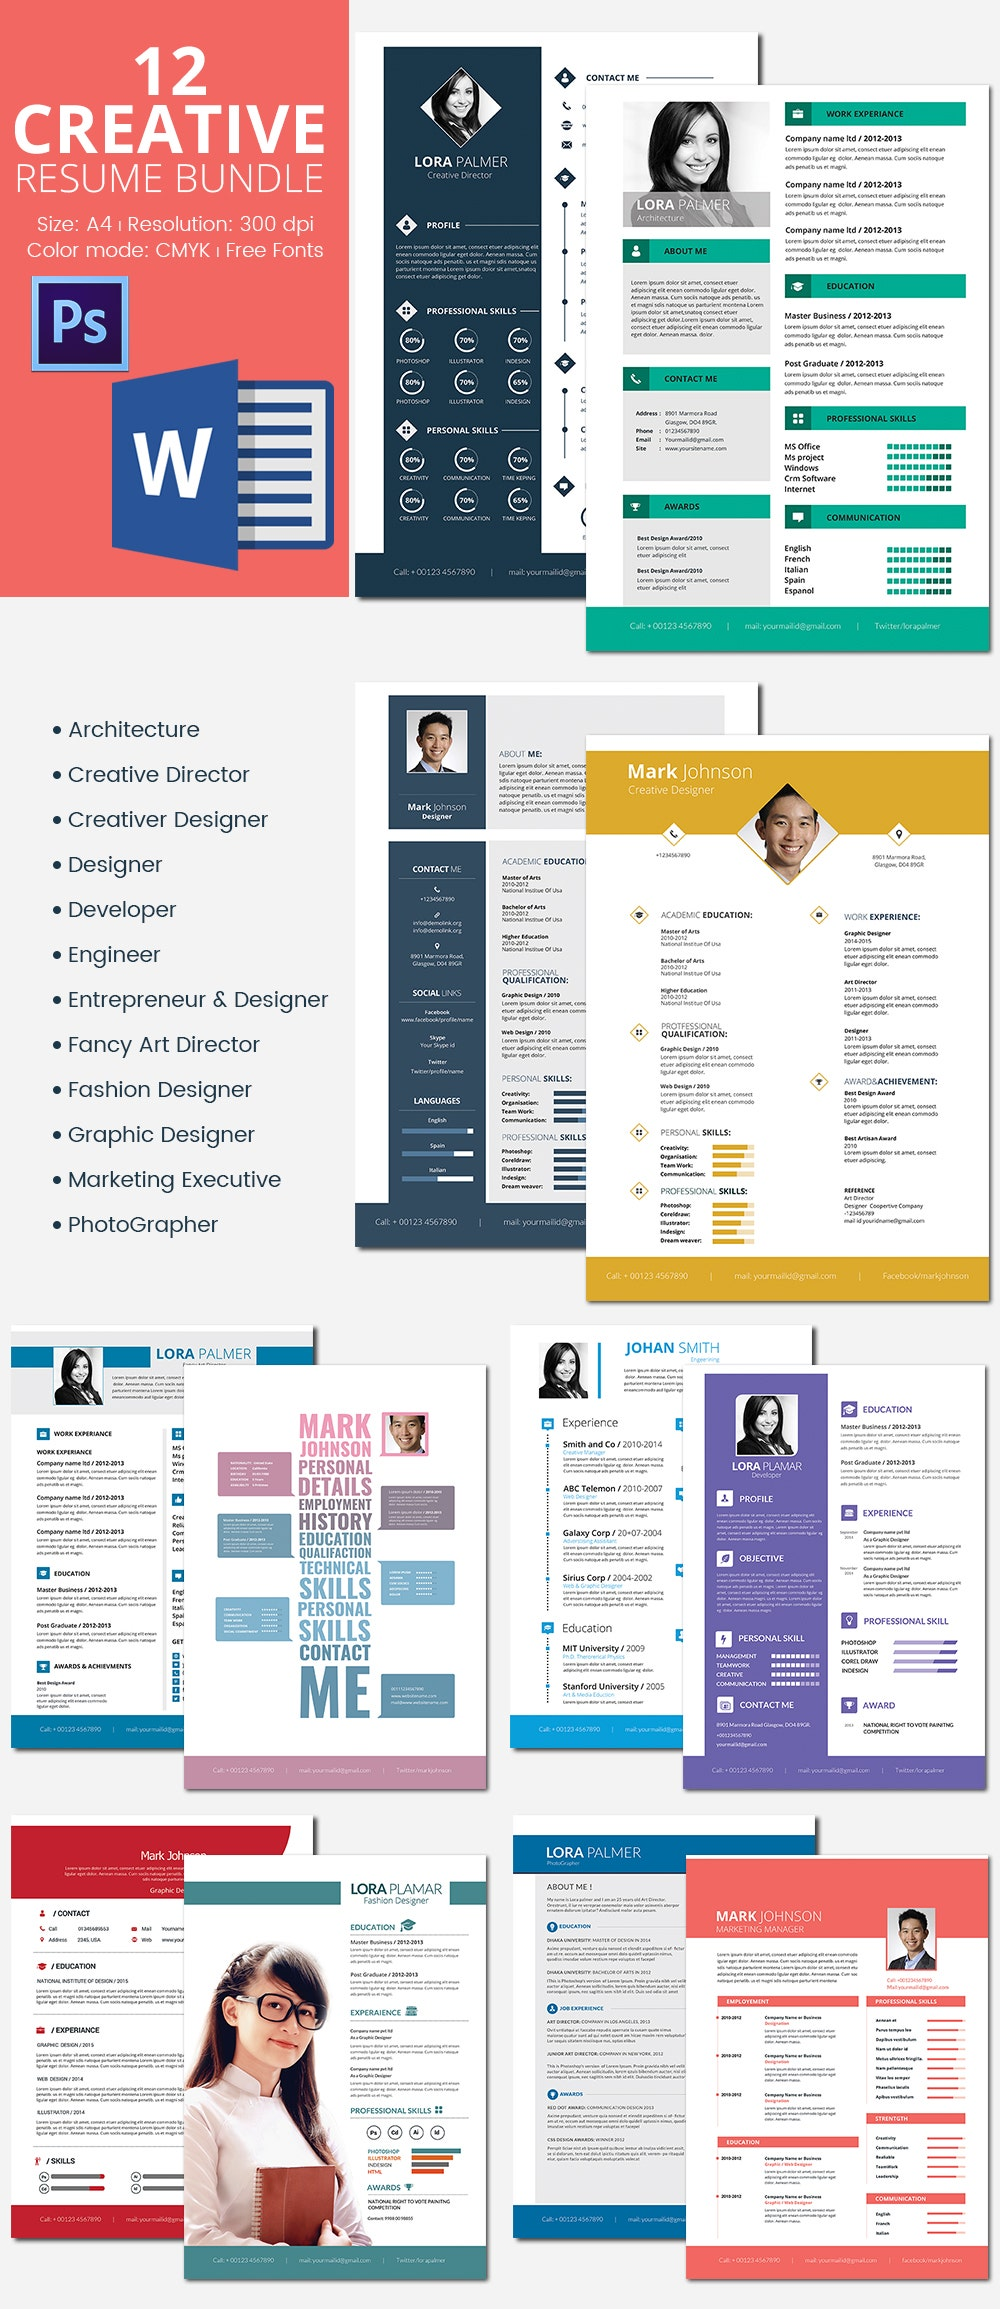 12 creative resume bundle only for 25 - Professional Resume Samples In Word Format